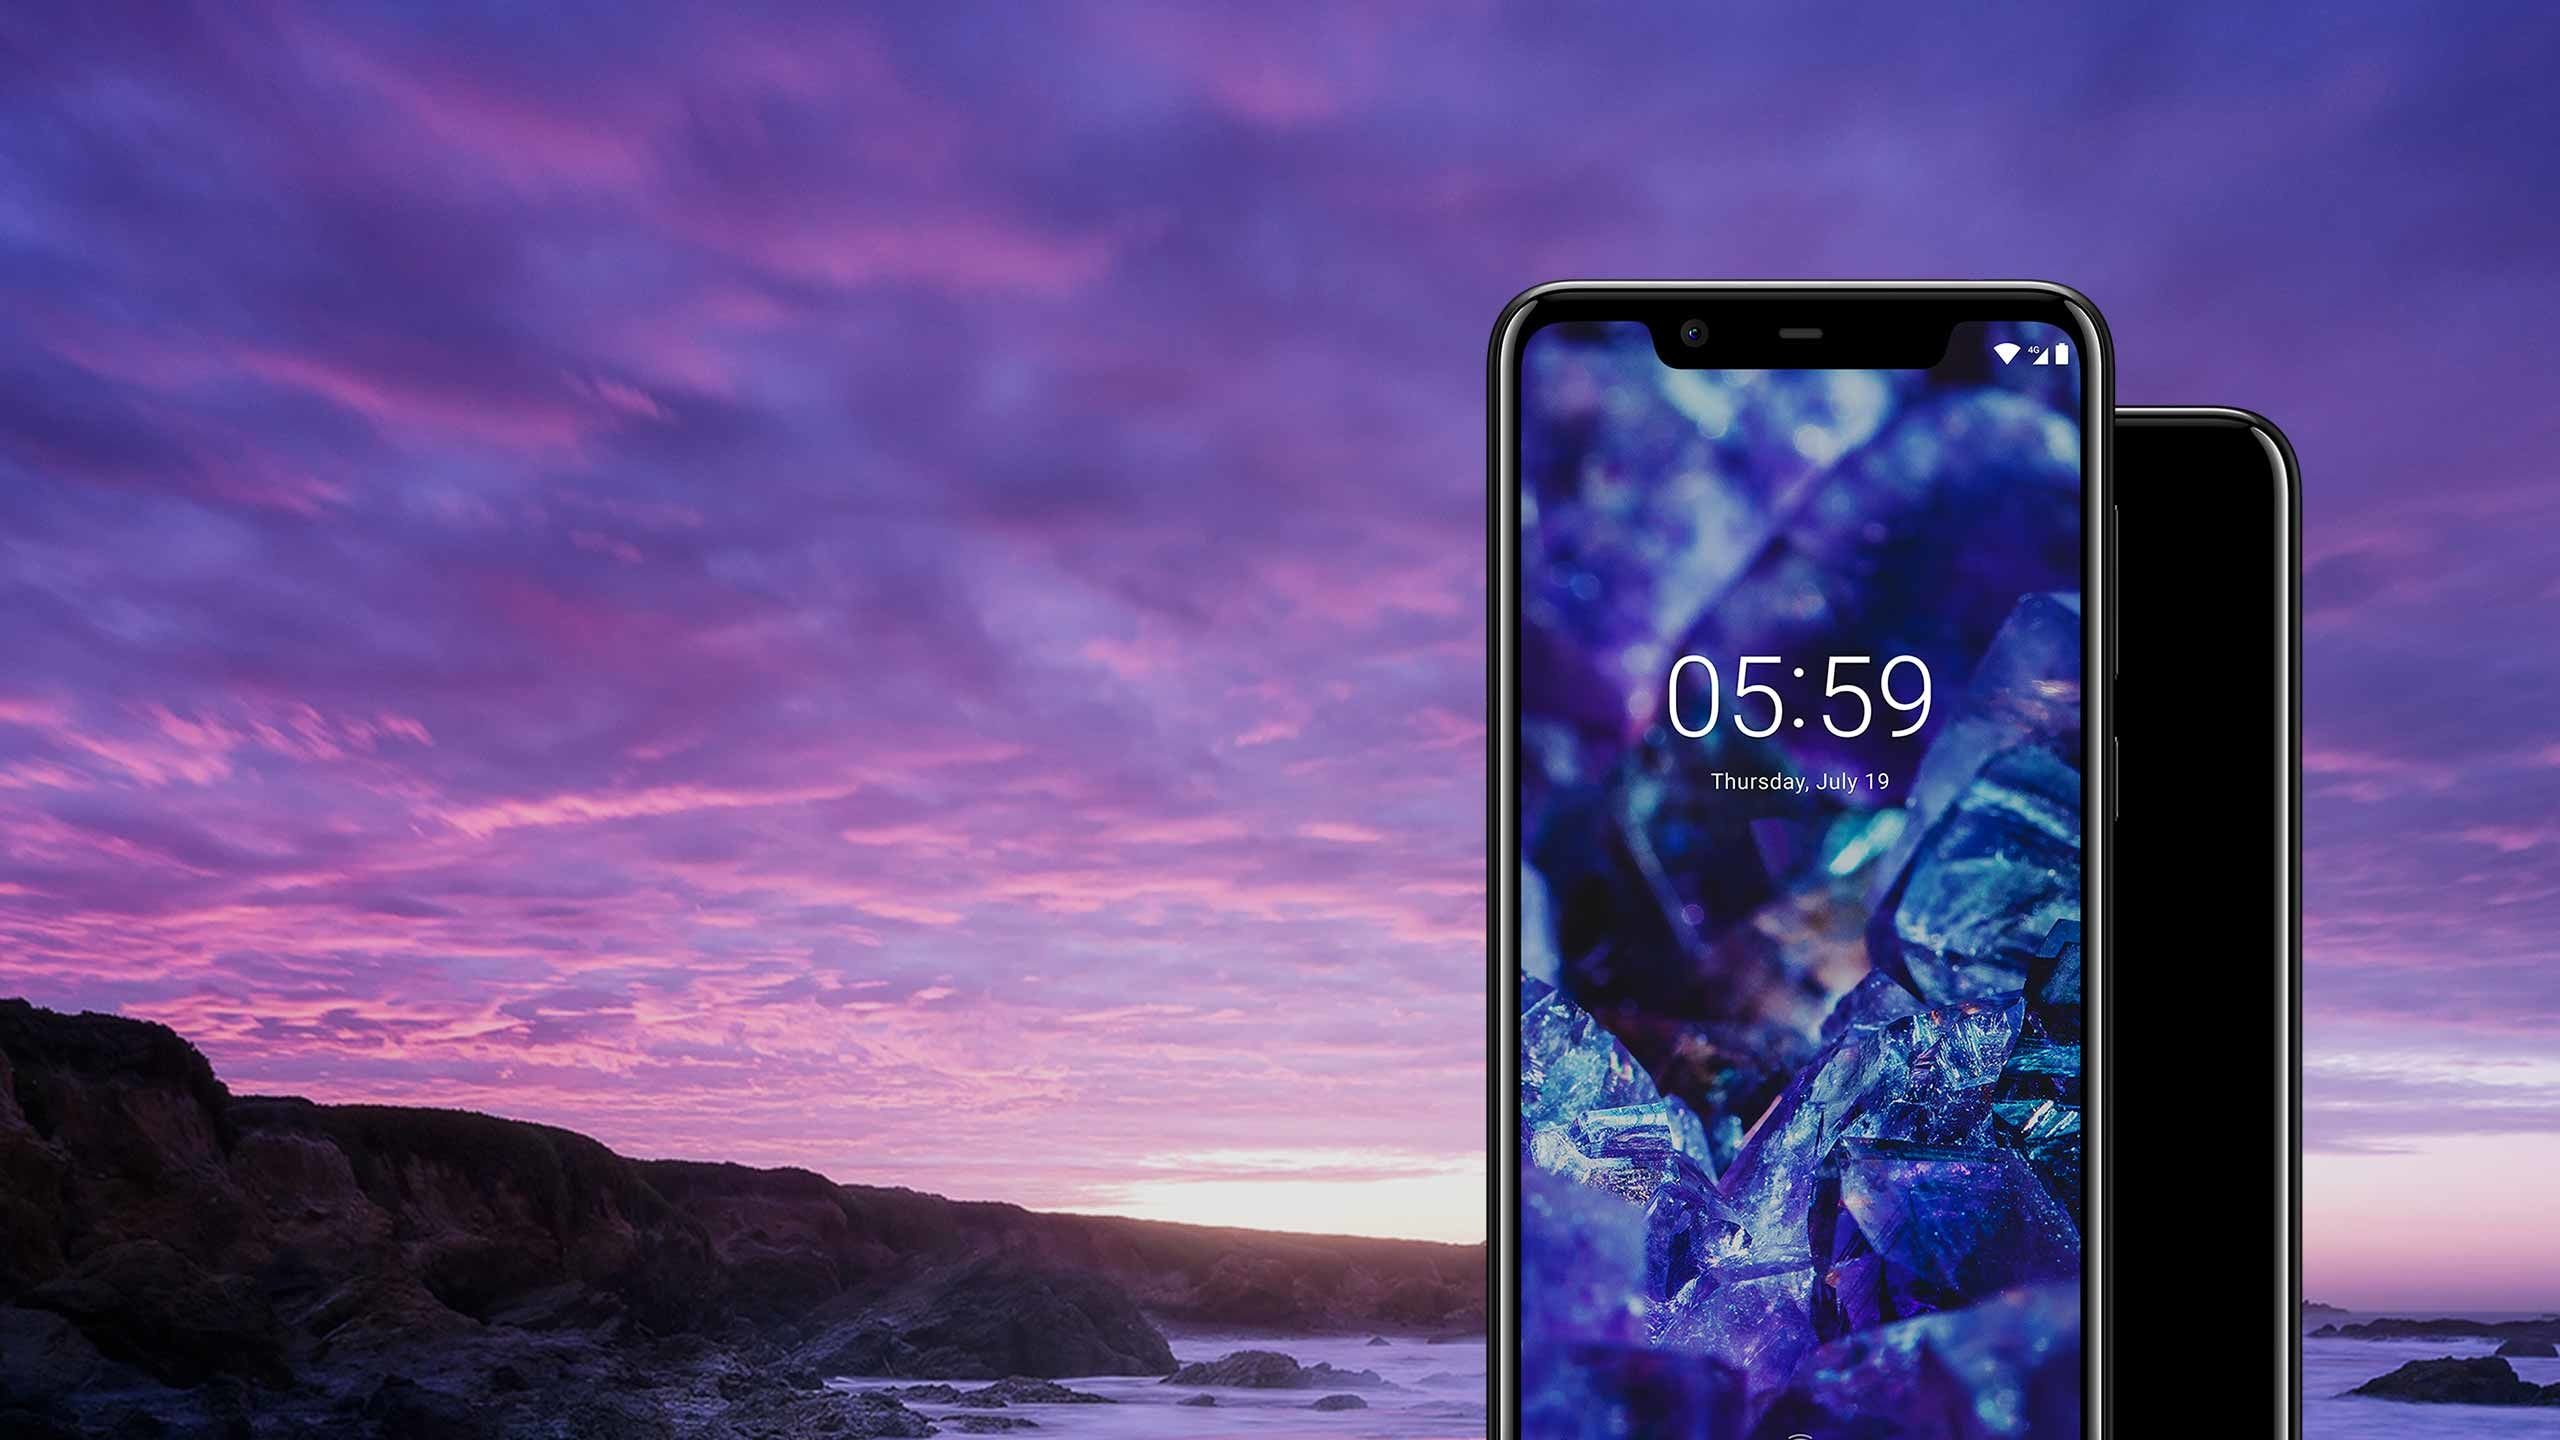 Nokia 5.1 Plus launched in India, priced at Rs 10,999